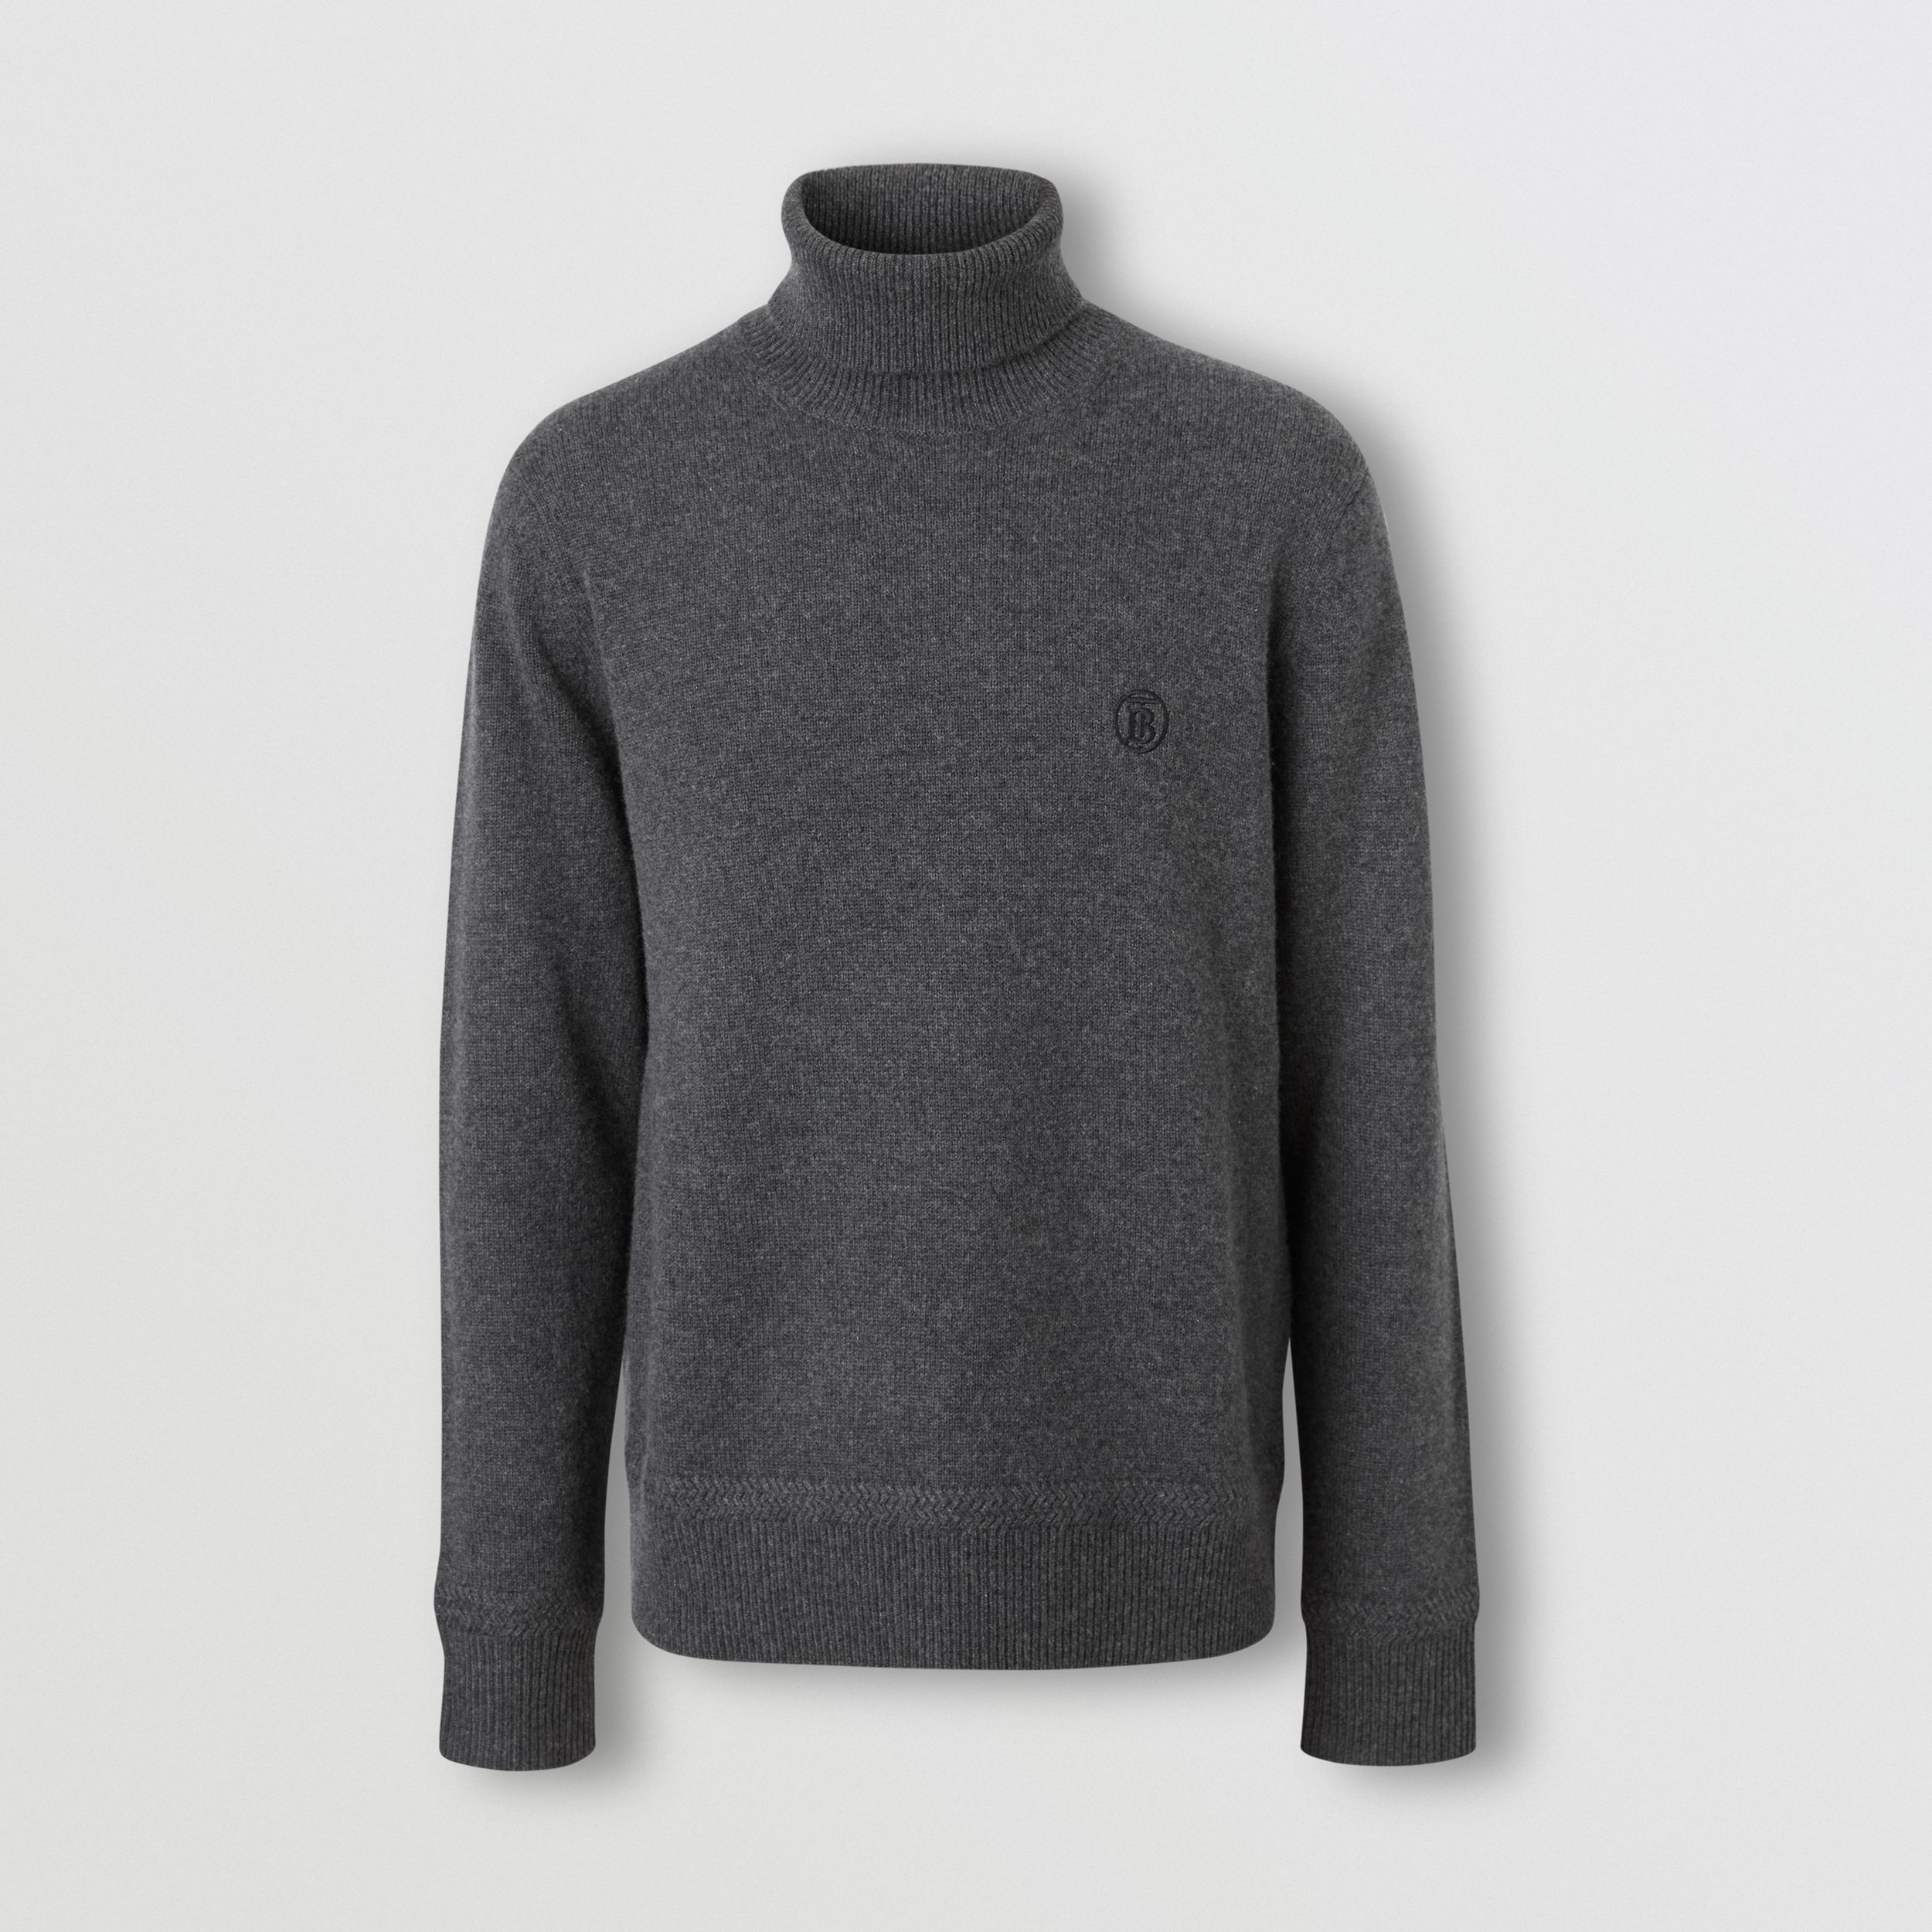 Monogram Motif Cashmere Roll-neck Sweater in Charcoal - Men | Burberry Australia - 4